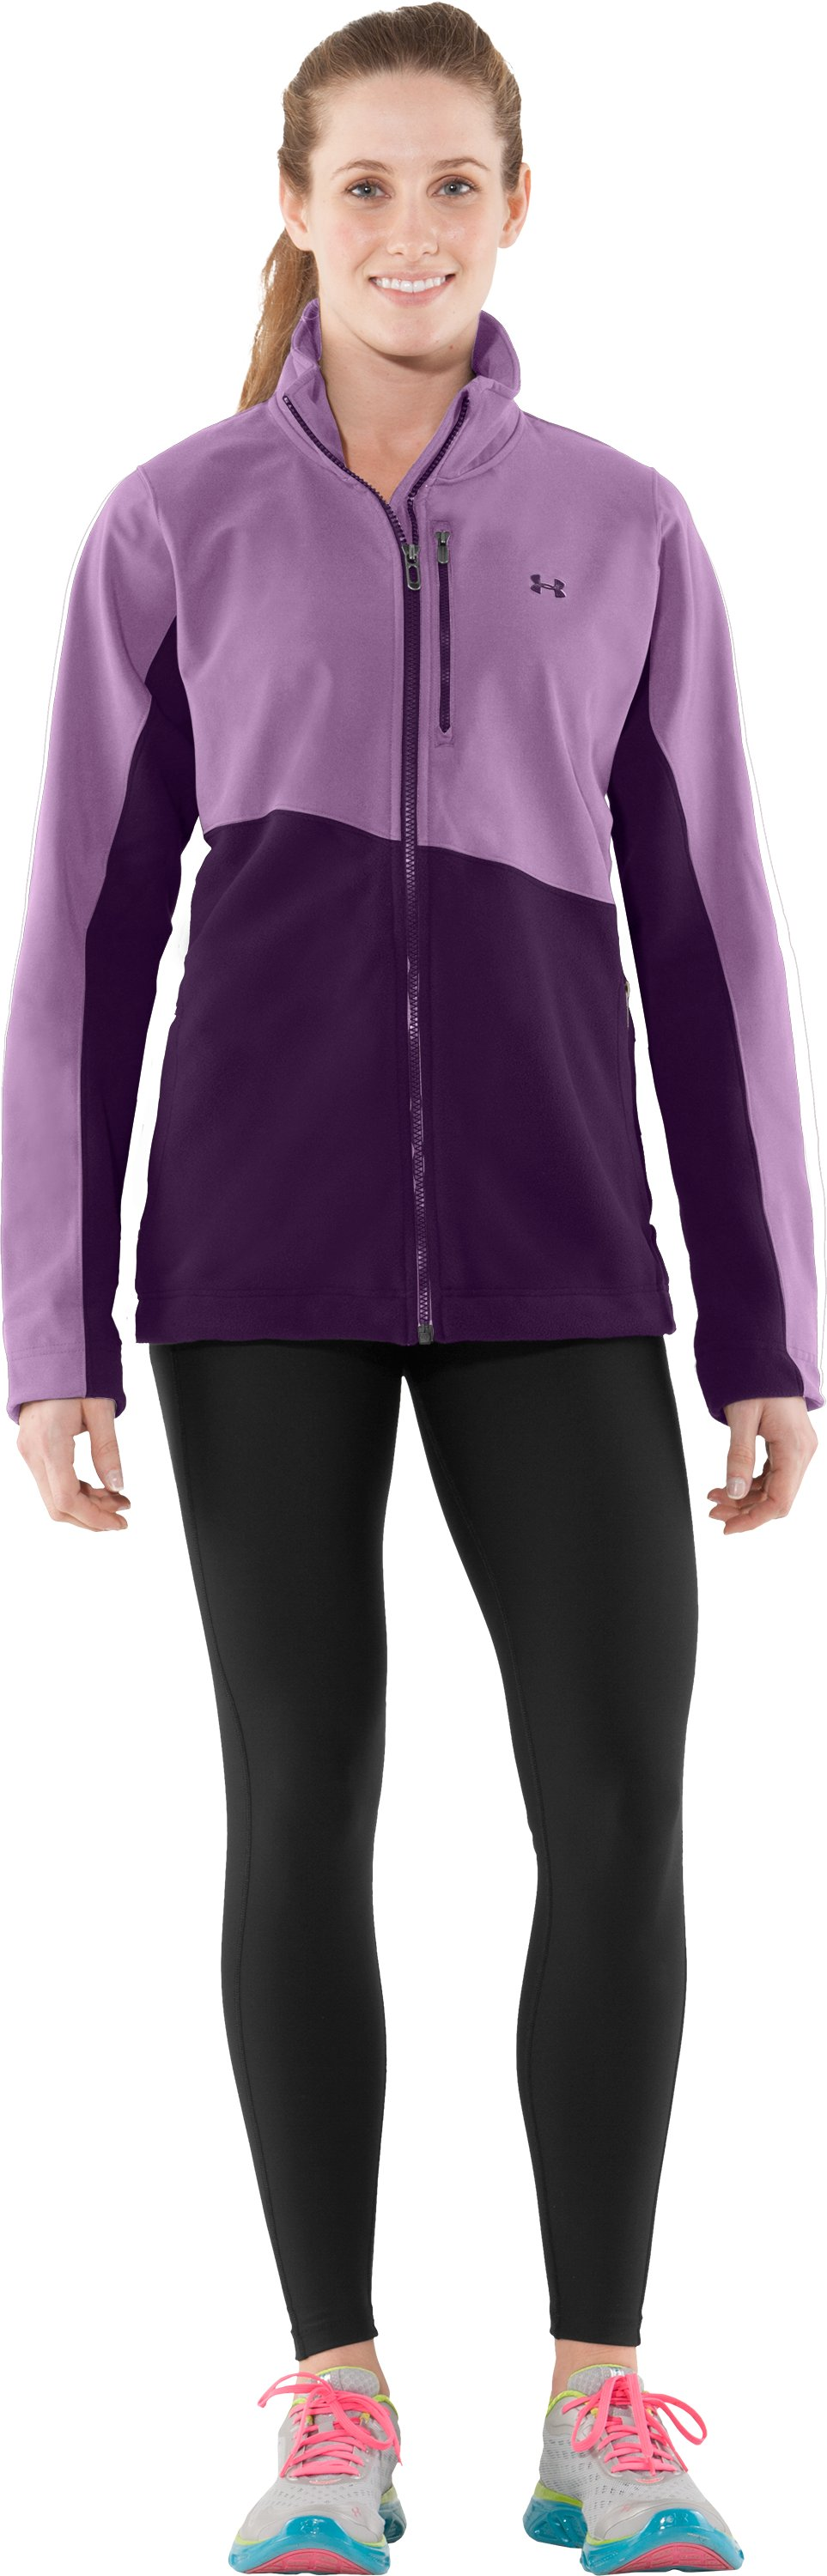 Women's Muroc Jacket, Sugar Plum